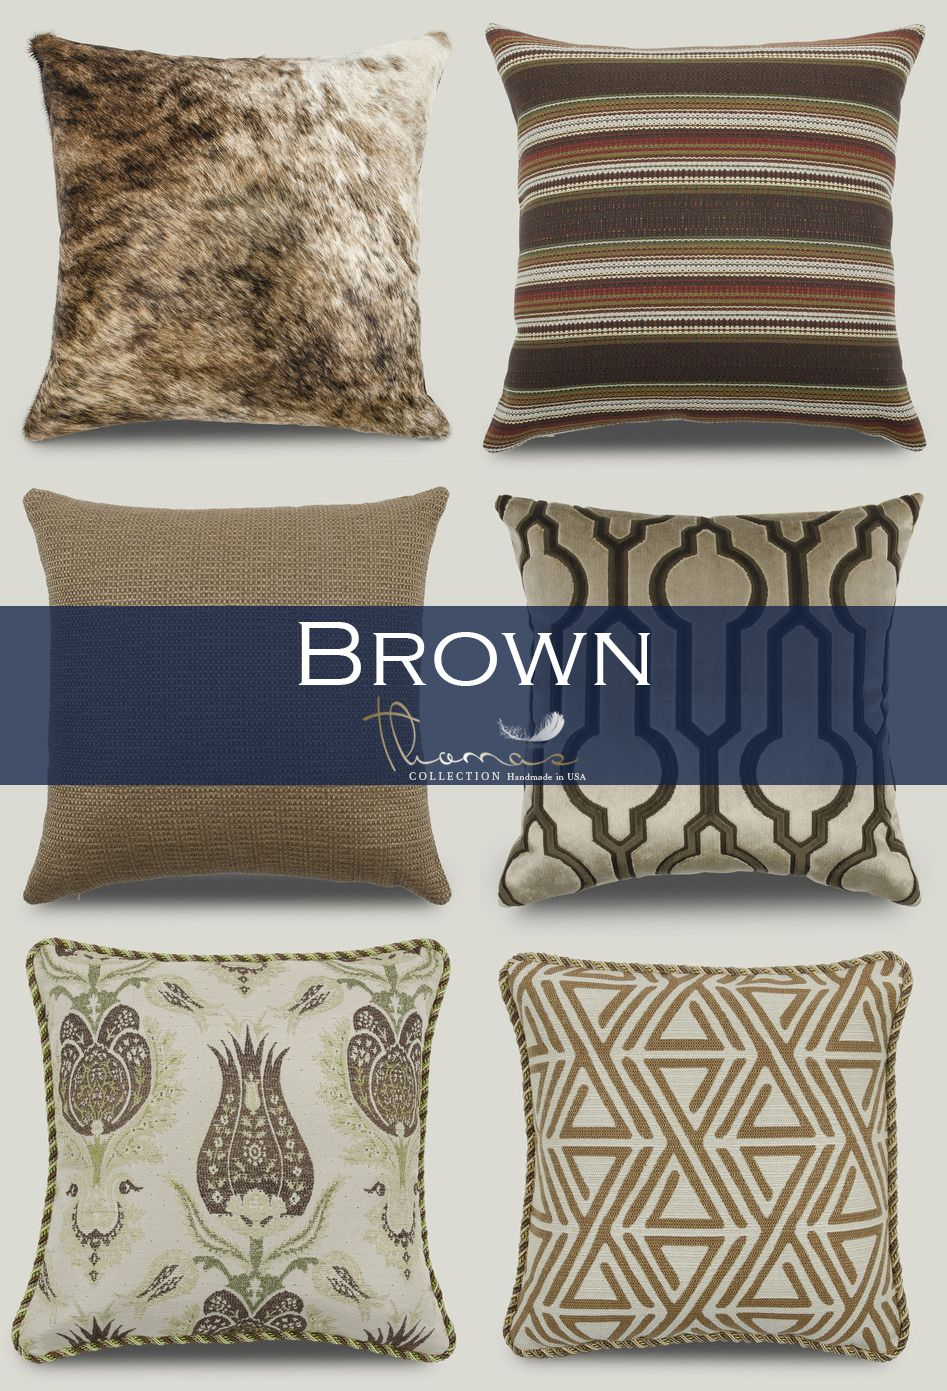 This week's featured color is…Brown! From patterns, to stripes, to geometric, we have any style of decorative pillow to match yours.